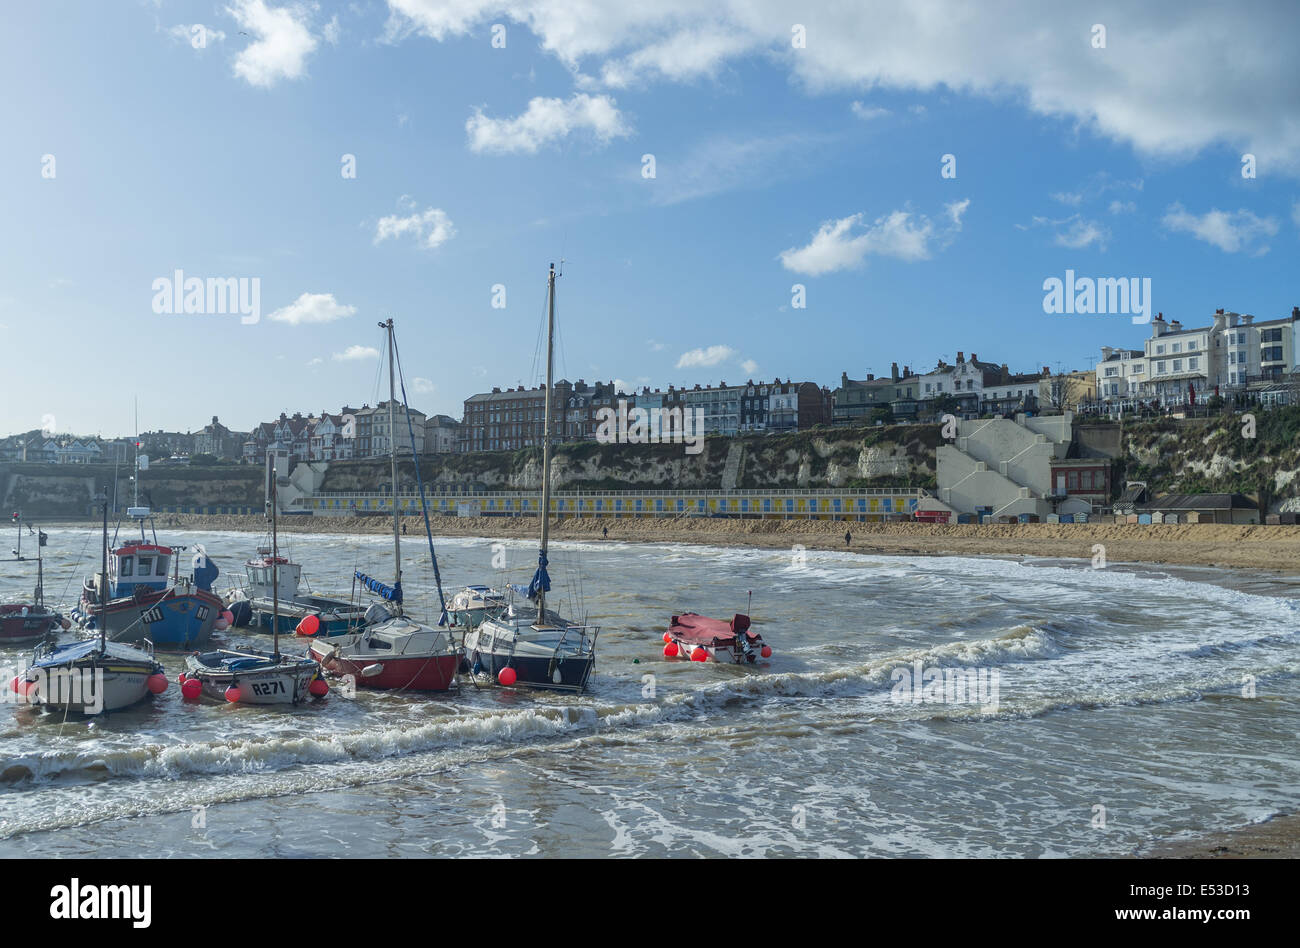 Boats in the harbour at Broadstairs, Kent, United Kingdom - Stock Image